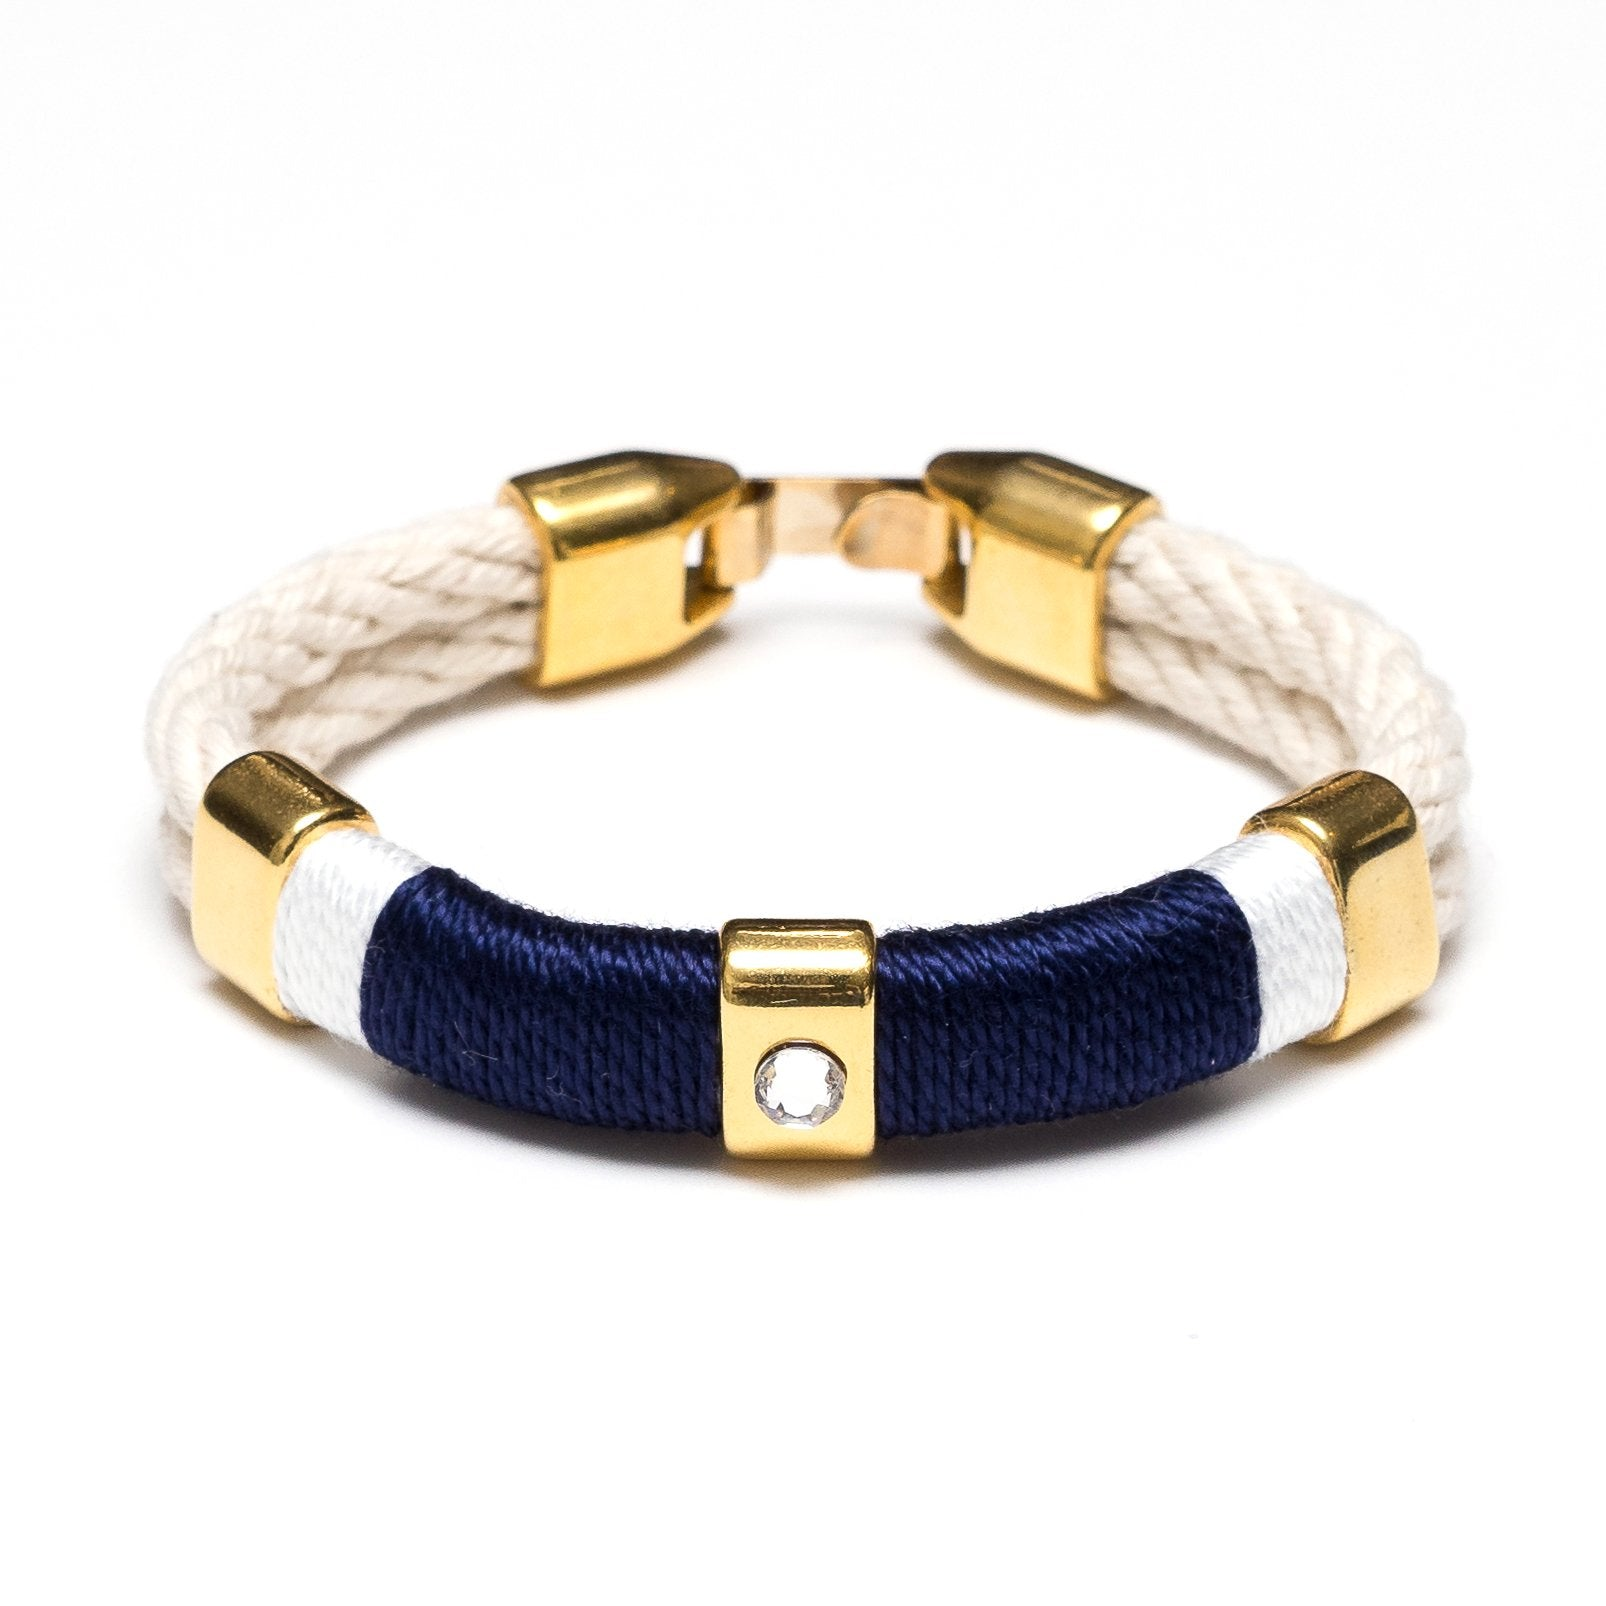 KINGSTON NAUTICAL BRACELET ALLISON COLE